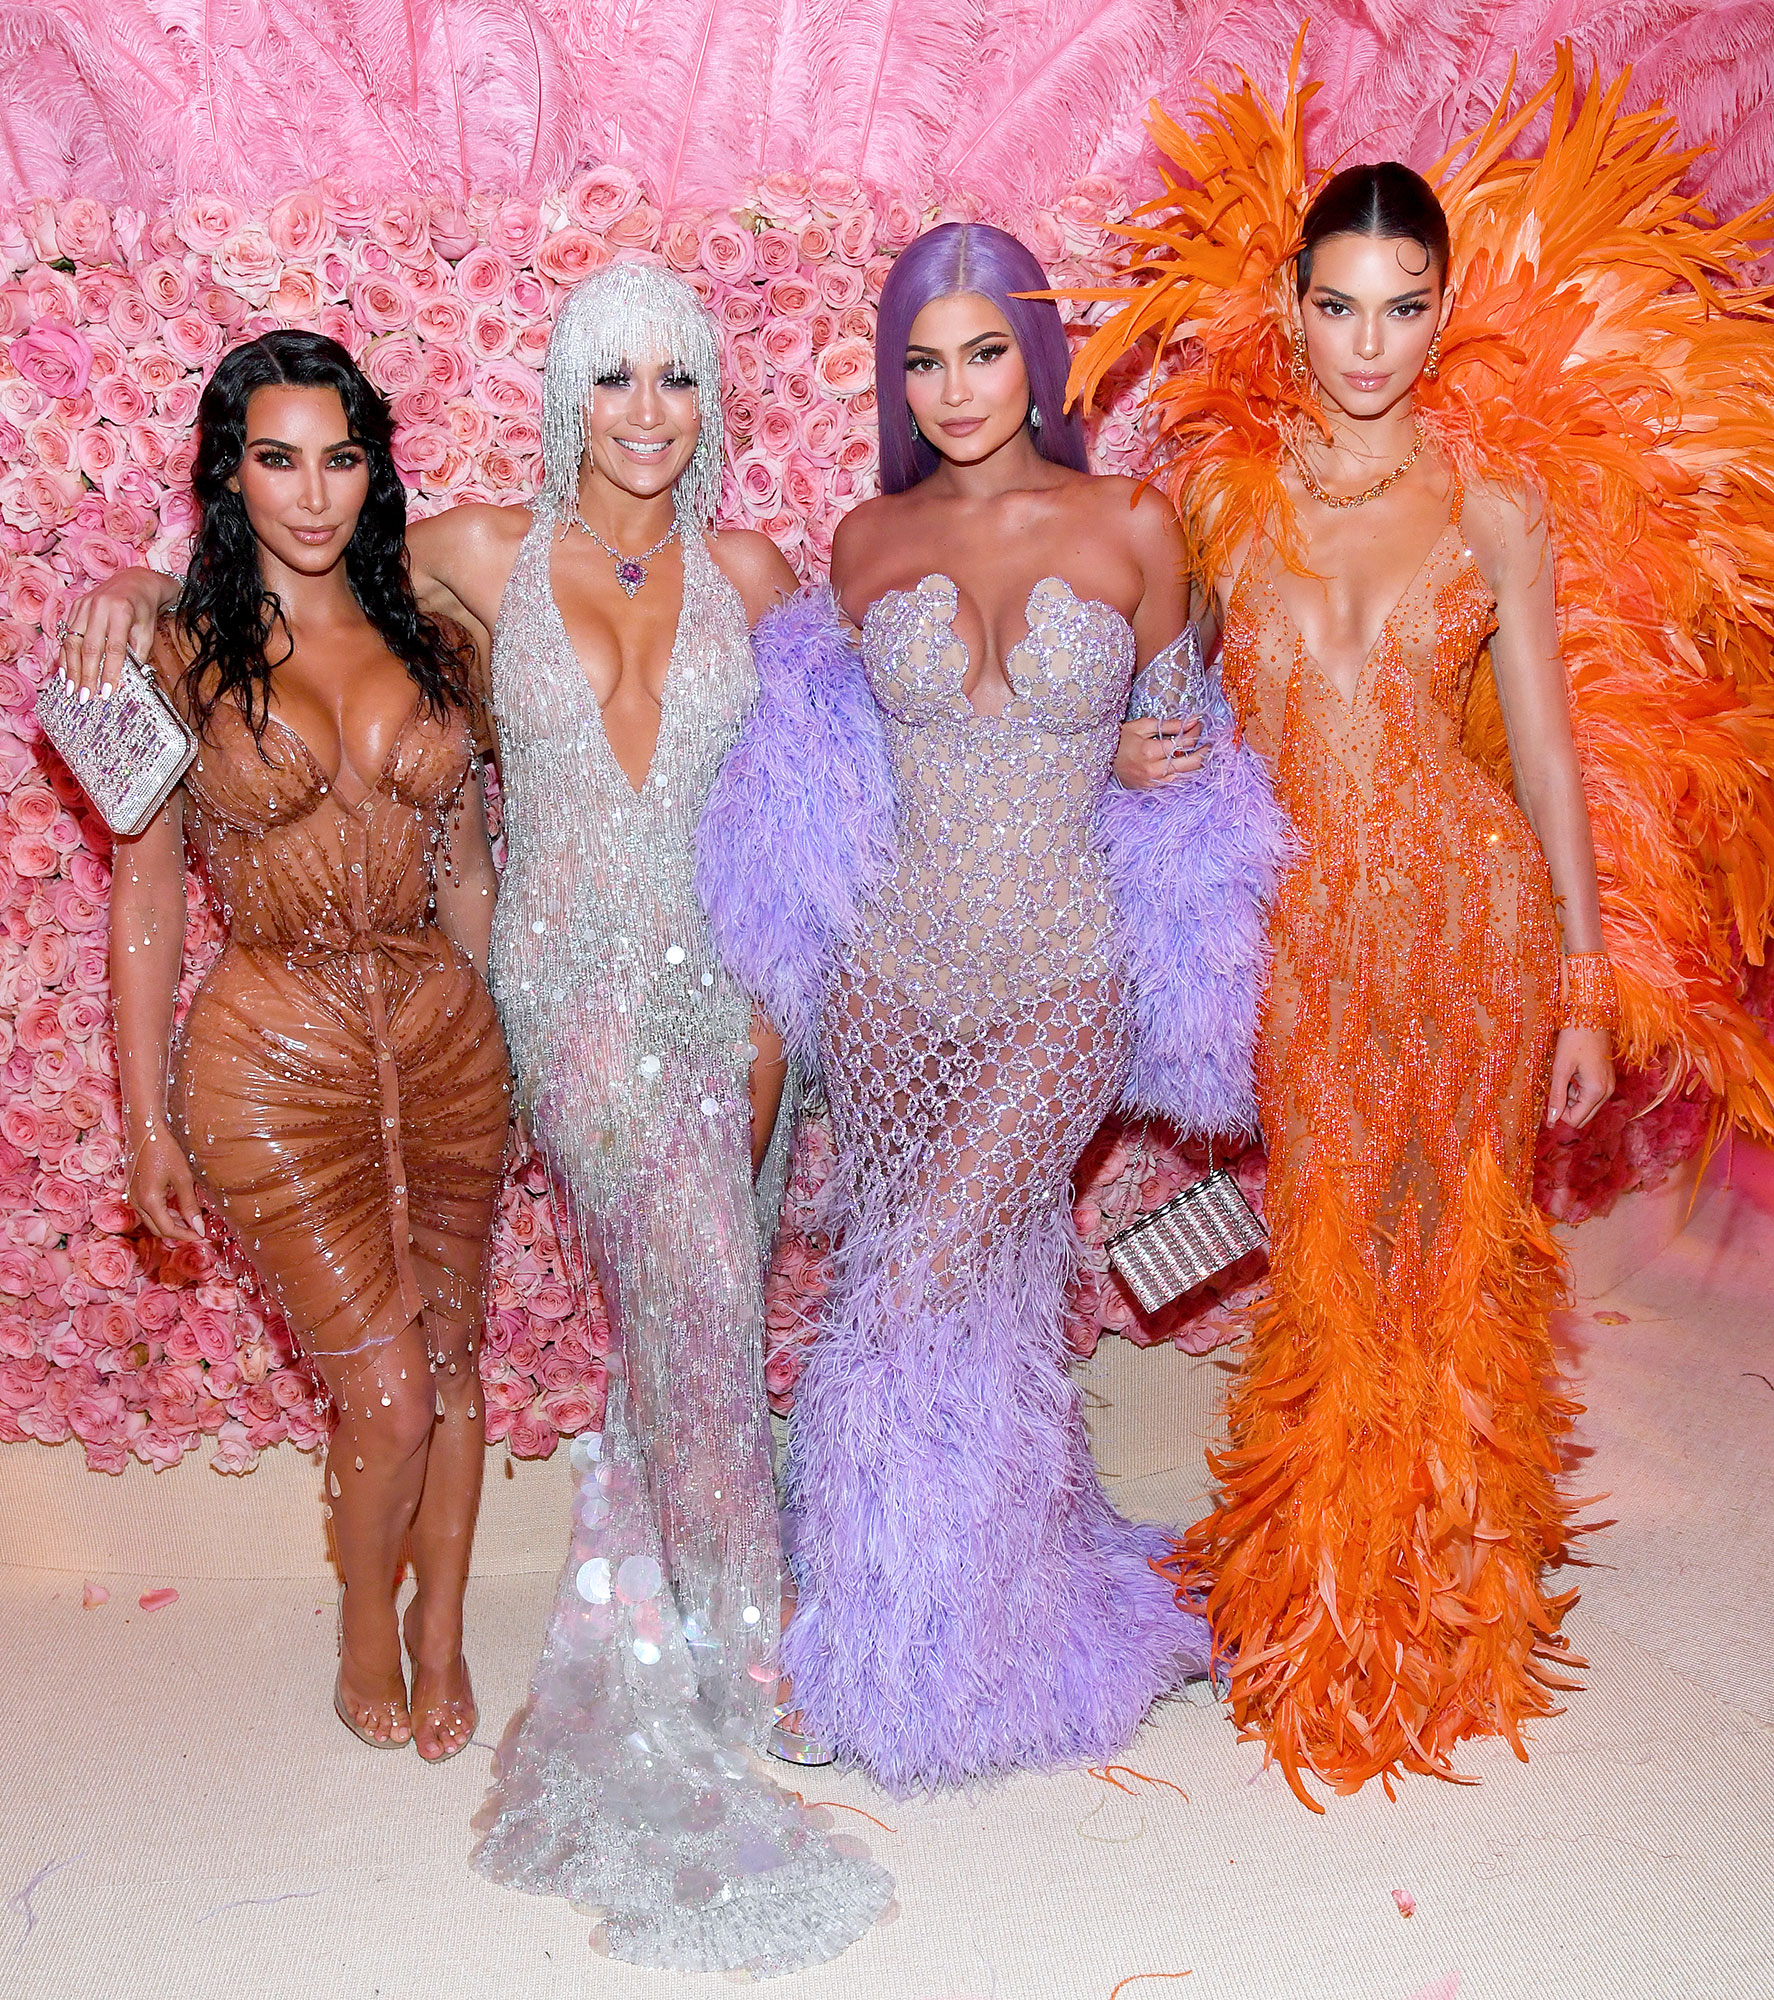 Met Gala 2019 What You Didnt See Kim Kardashian West Jennifer Lopez Kylie Jenner Kendall Jenner - Lopez looked like a part of the family while partying with Kardashian and Kendall and Kylie.